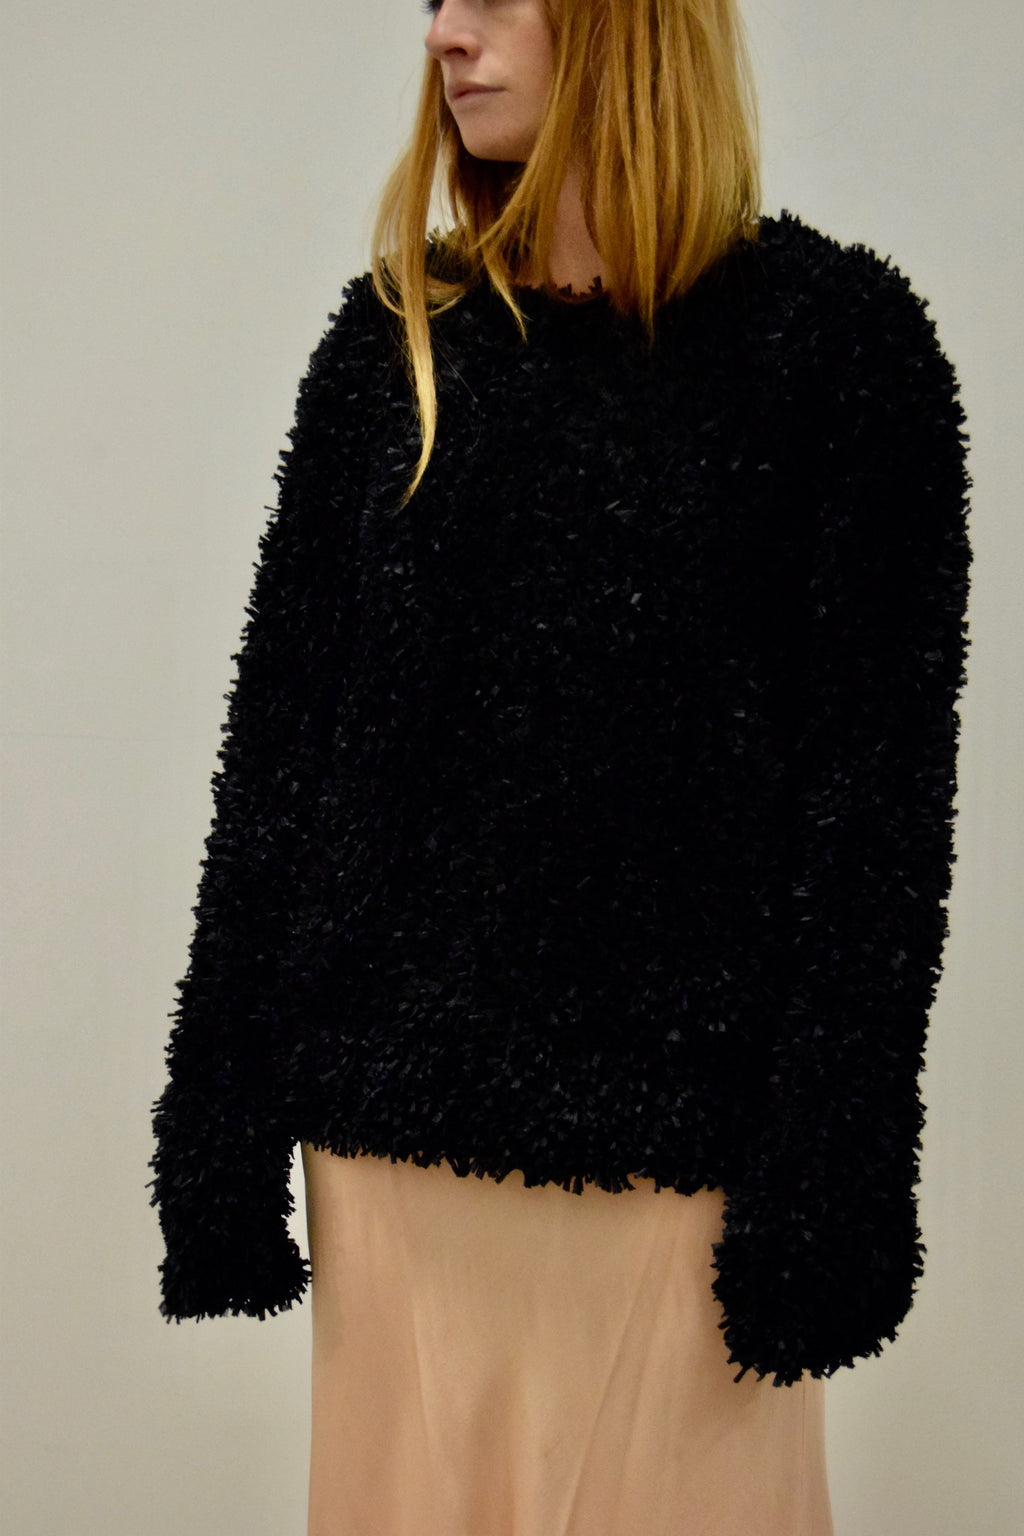 Heavy Black Textured Max Mara Knit